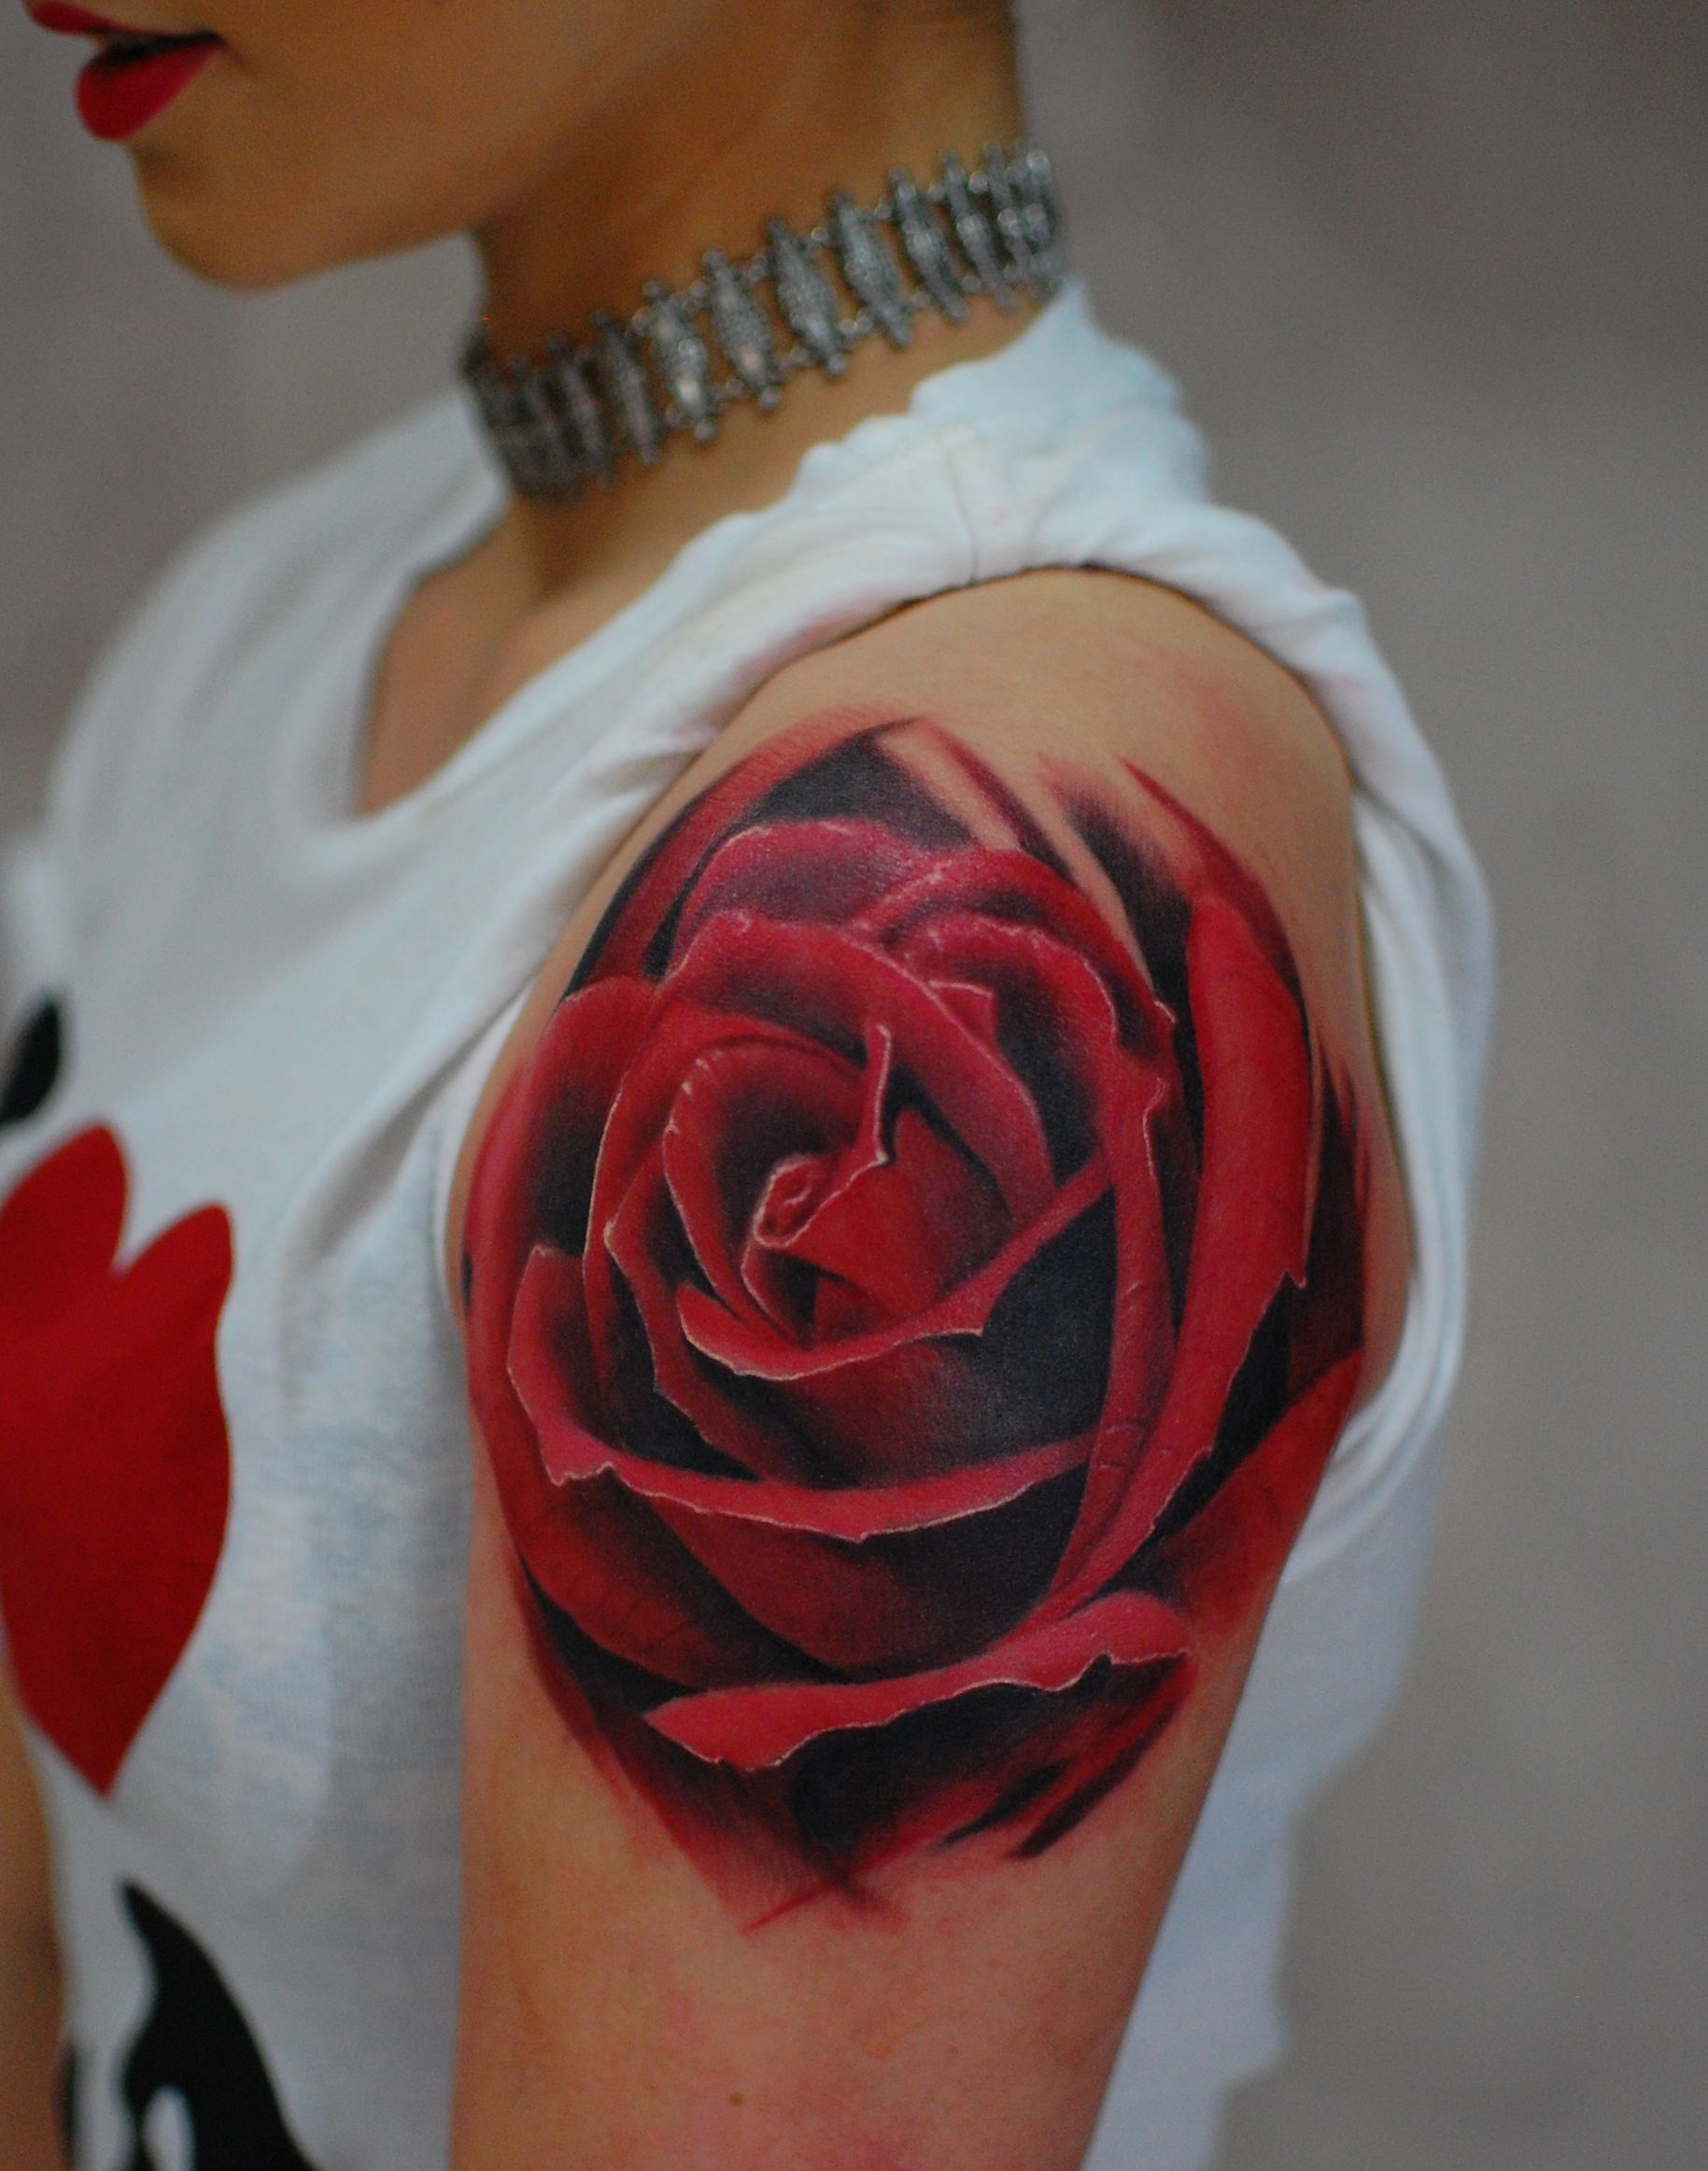 Rose tattoo best top amazing stunning beautiul red rose Marci Tattoo Anansi Munich München Künstler Artist